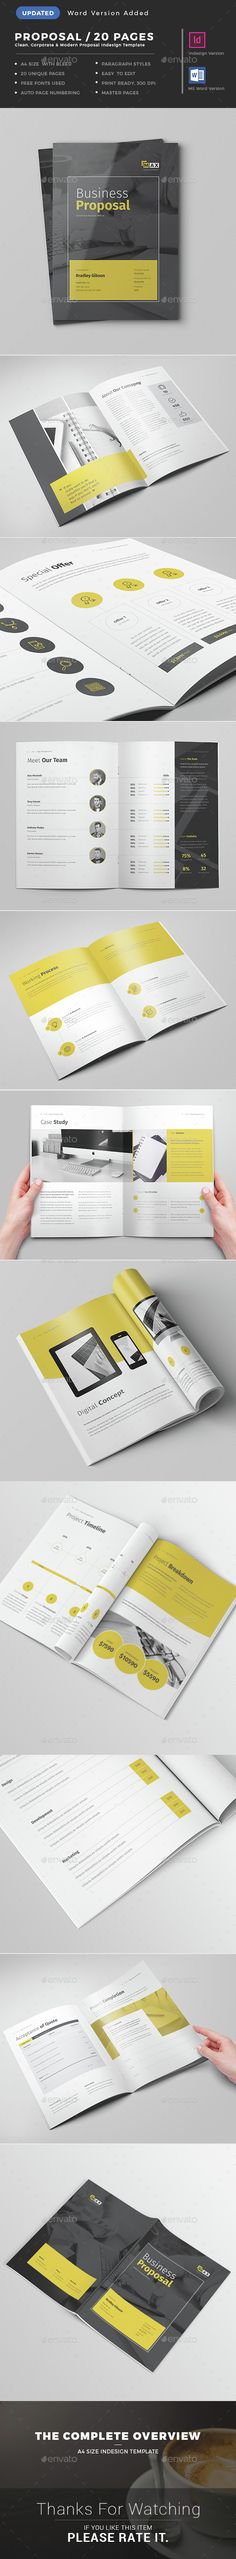 Overlay Indesign Proposal Template with awesome features